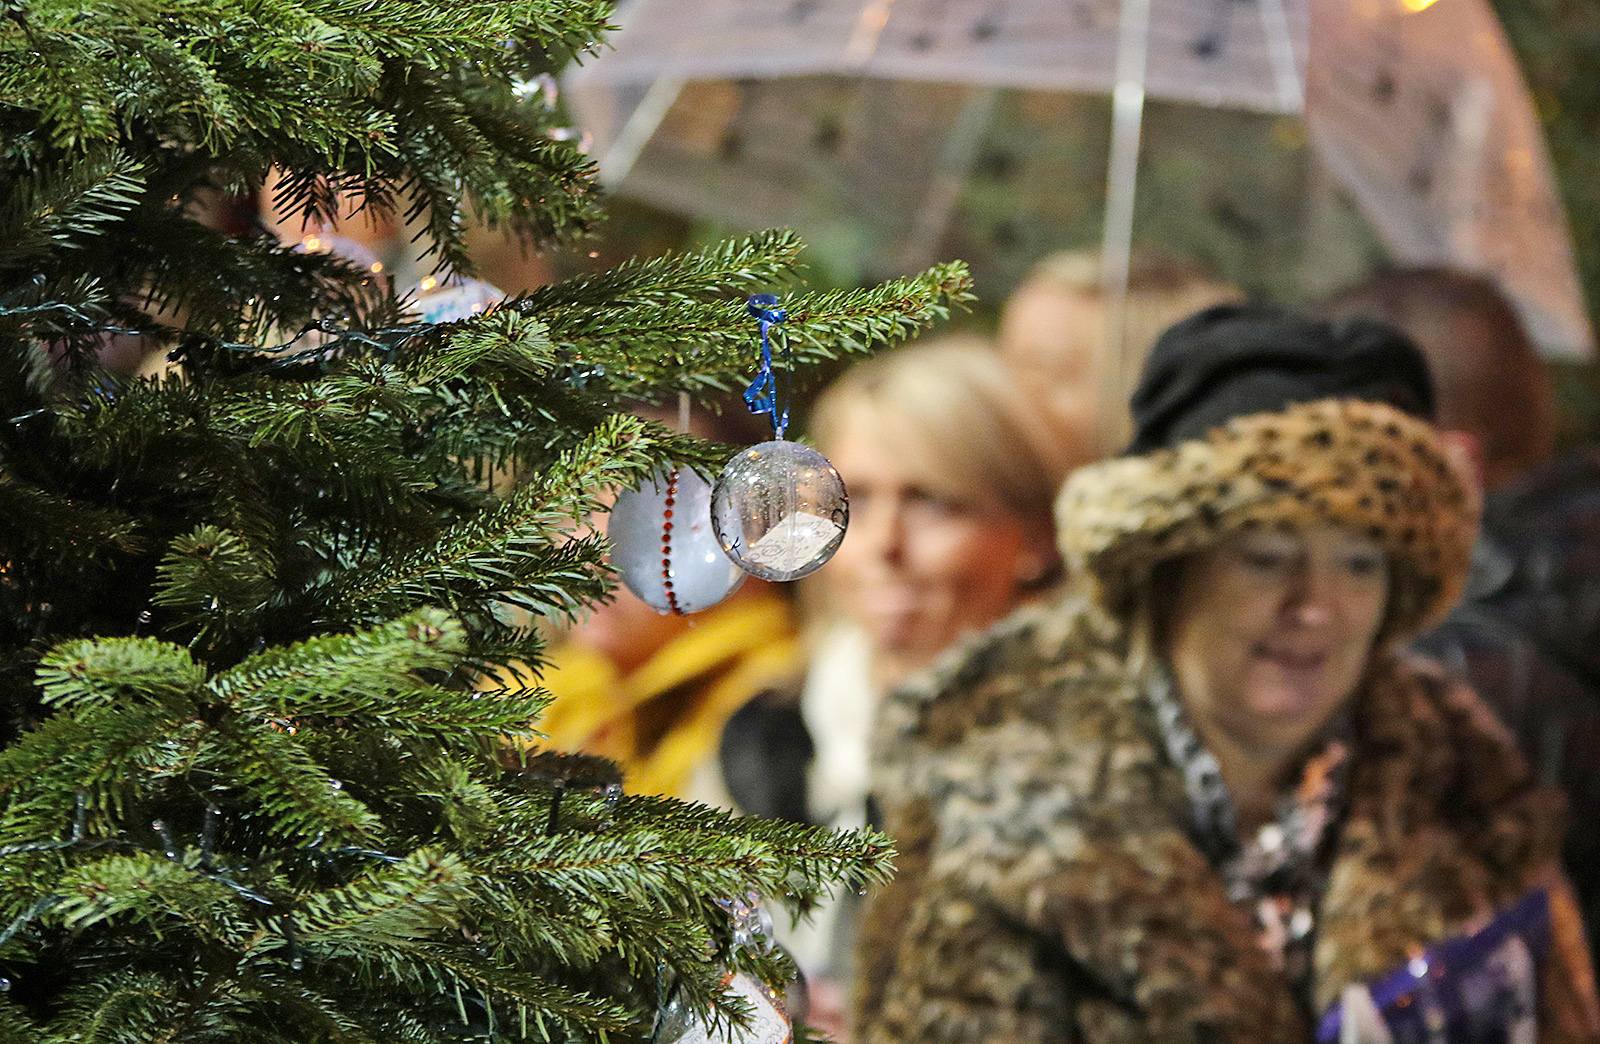 The Tree of Lights ceremony has been organised every year since PIPS opened